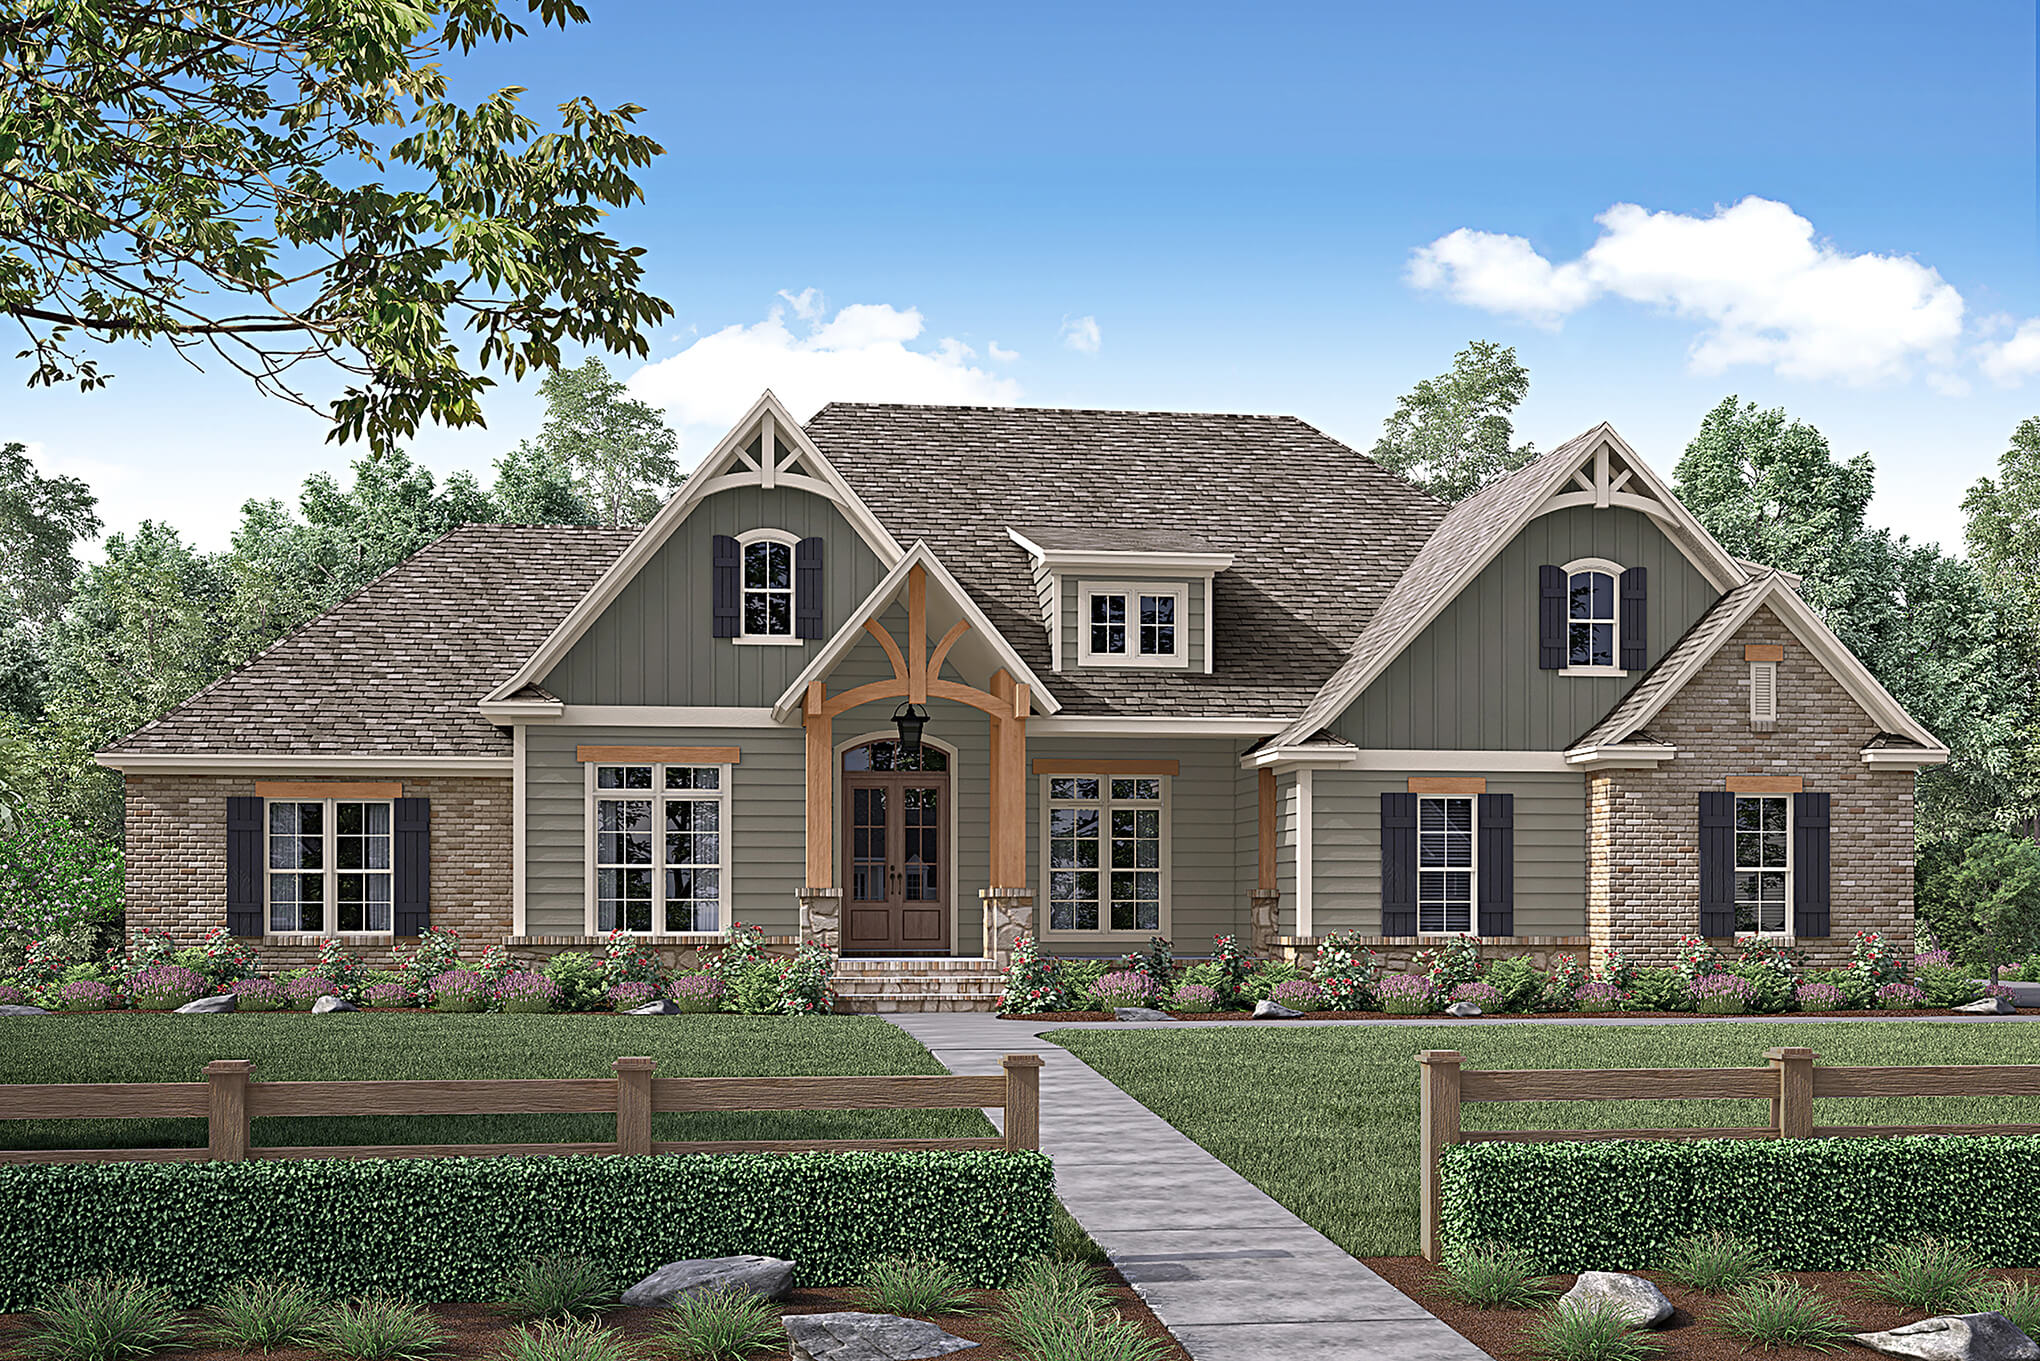 Small house plan home plan 142 -  142 1170 Front Elevation Of Country Home Theplancollection House Plan 142 1170